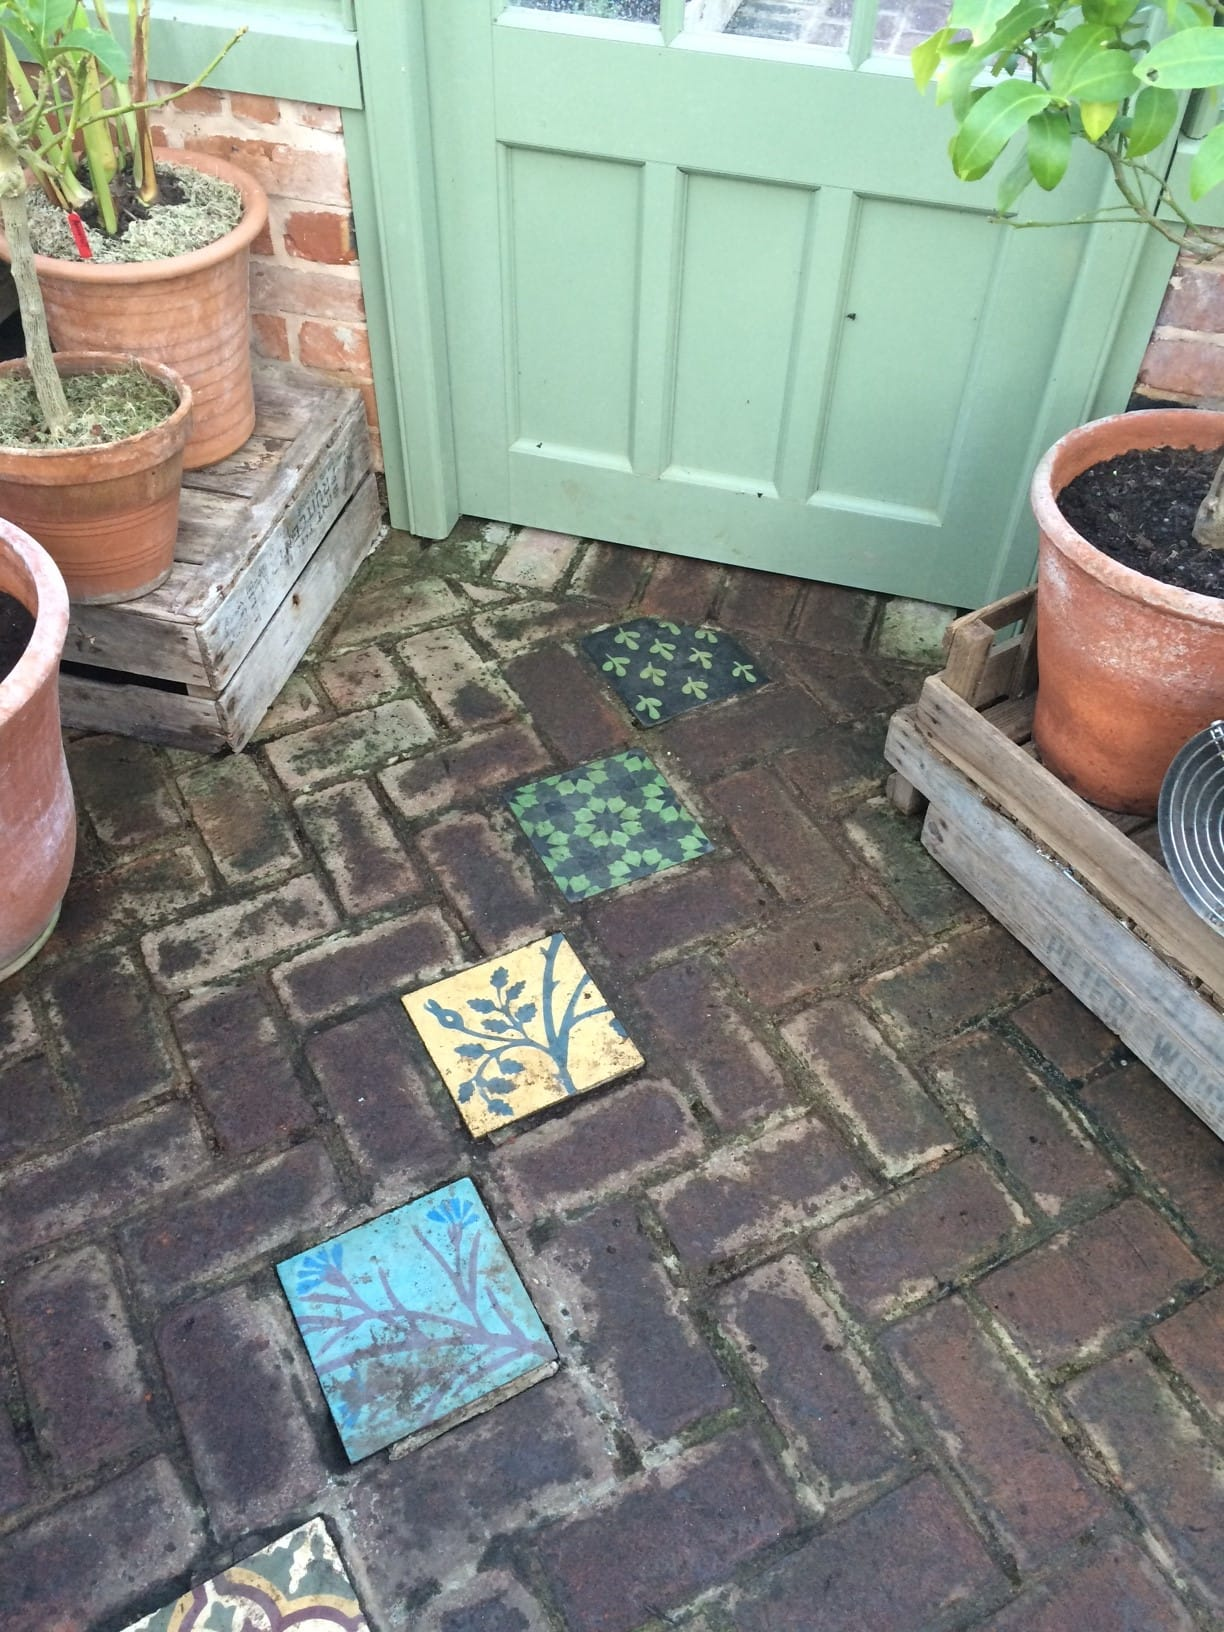 Tiles on the floor of the greenhouse